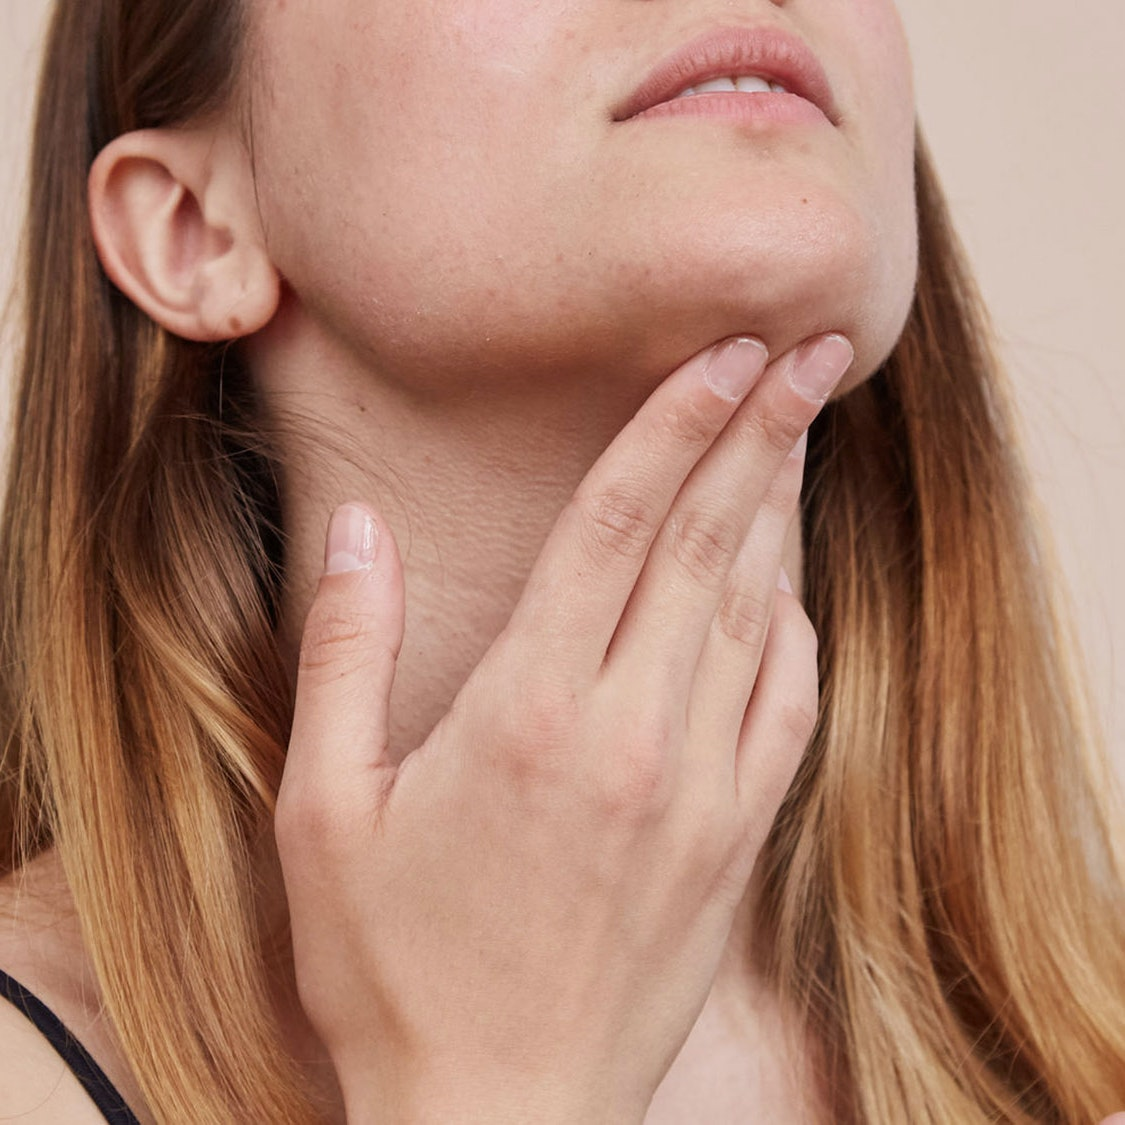 You May Not Have Heard of Inflammaging, But It's Probably Affecting Your Skin